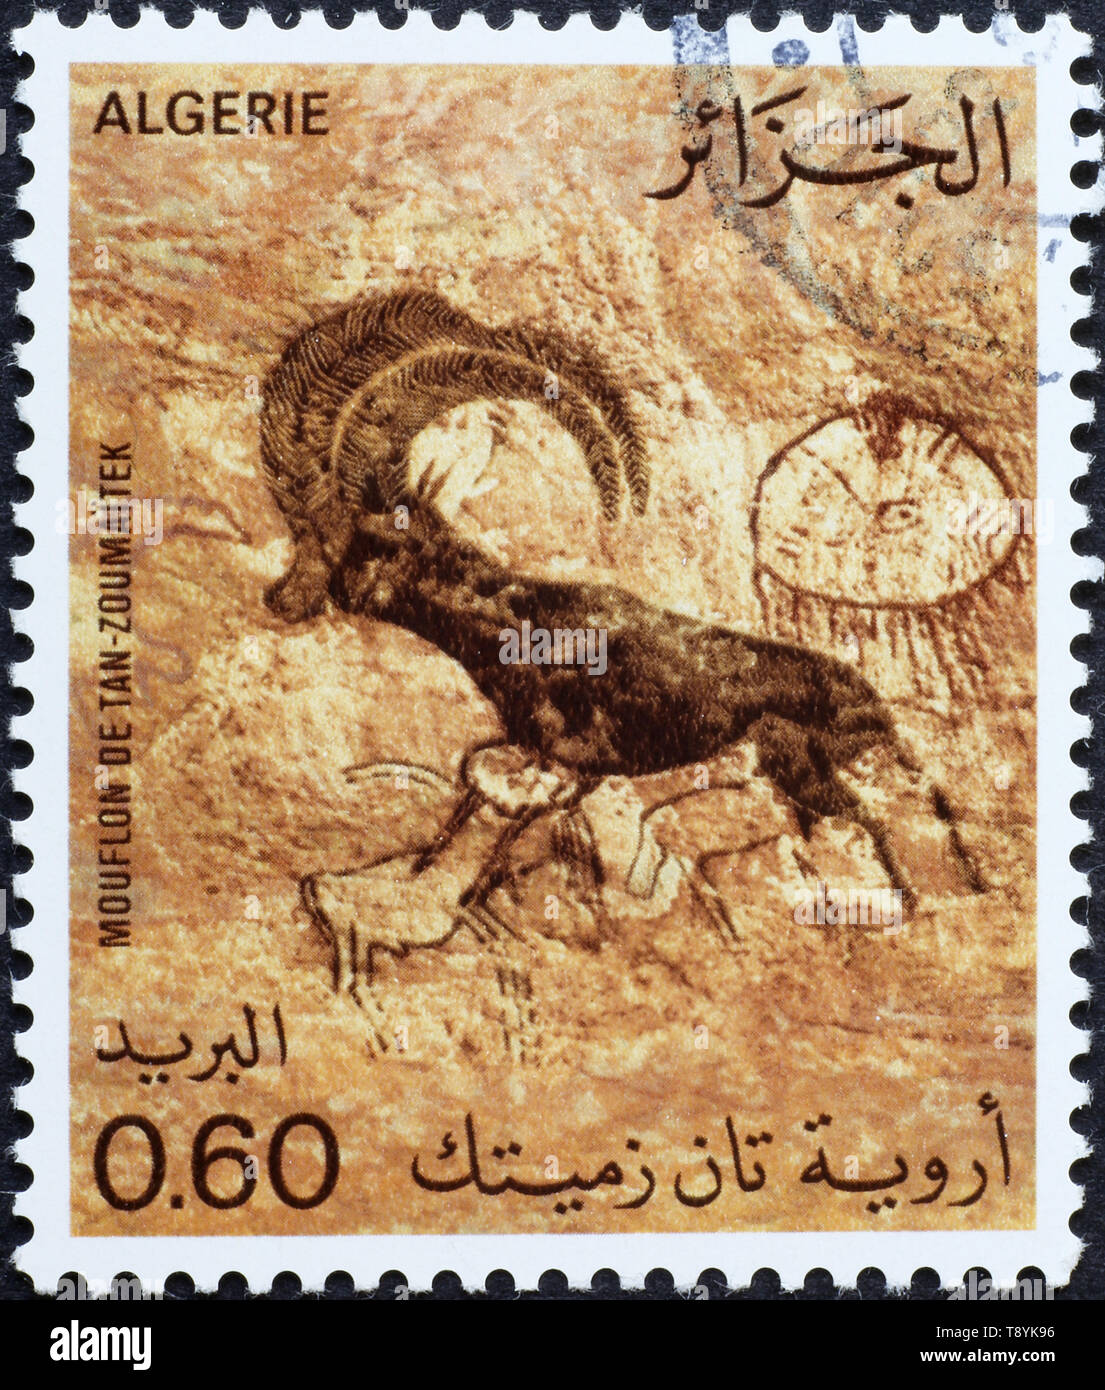 Prehistoric depictions of ibex on algerian postage stamp - Stock Image